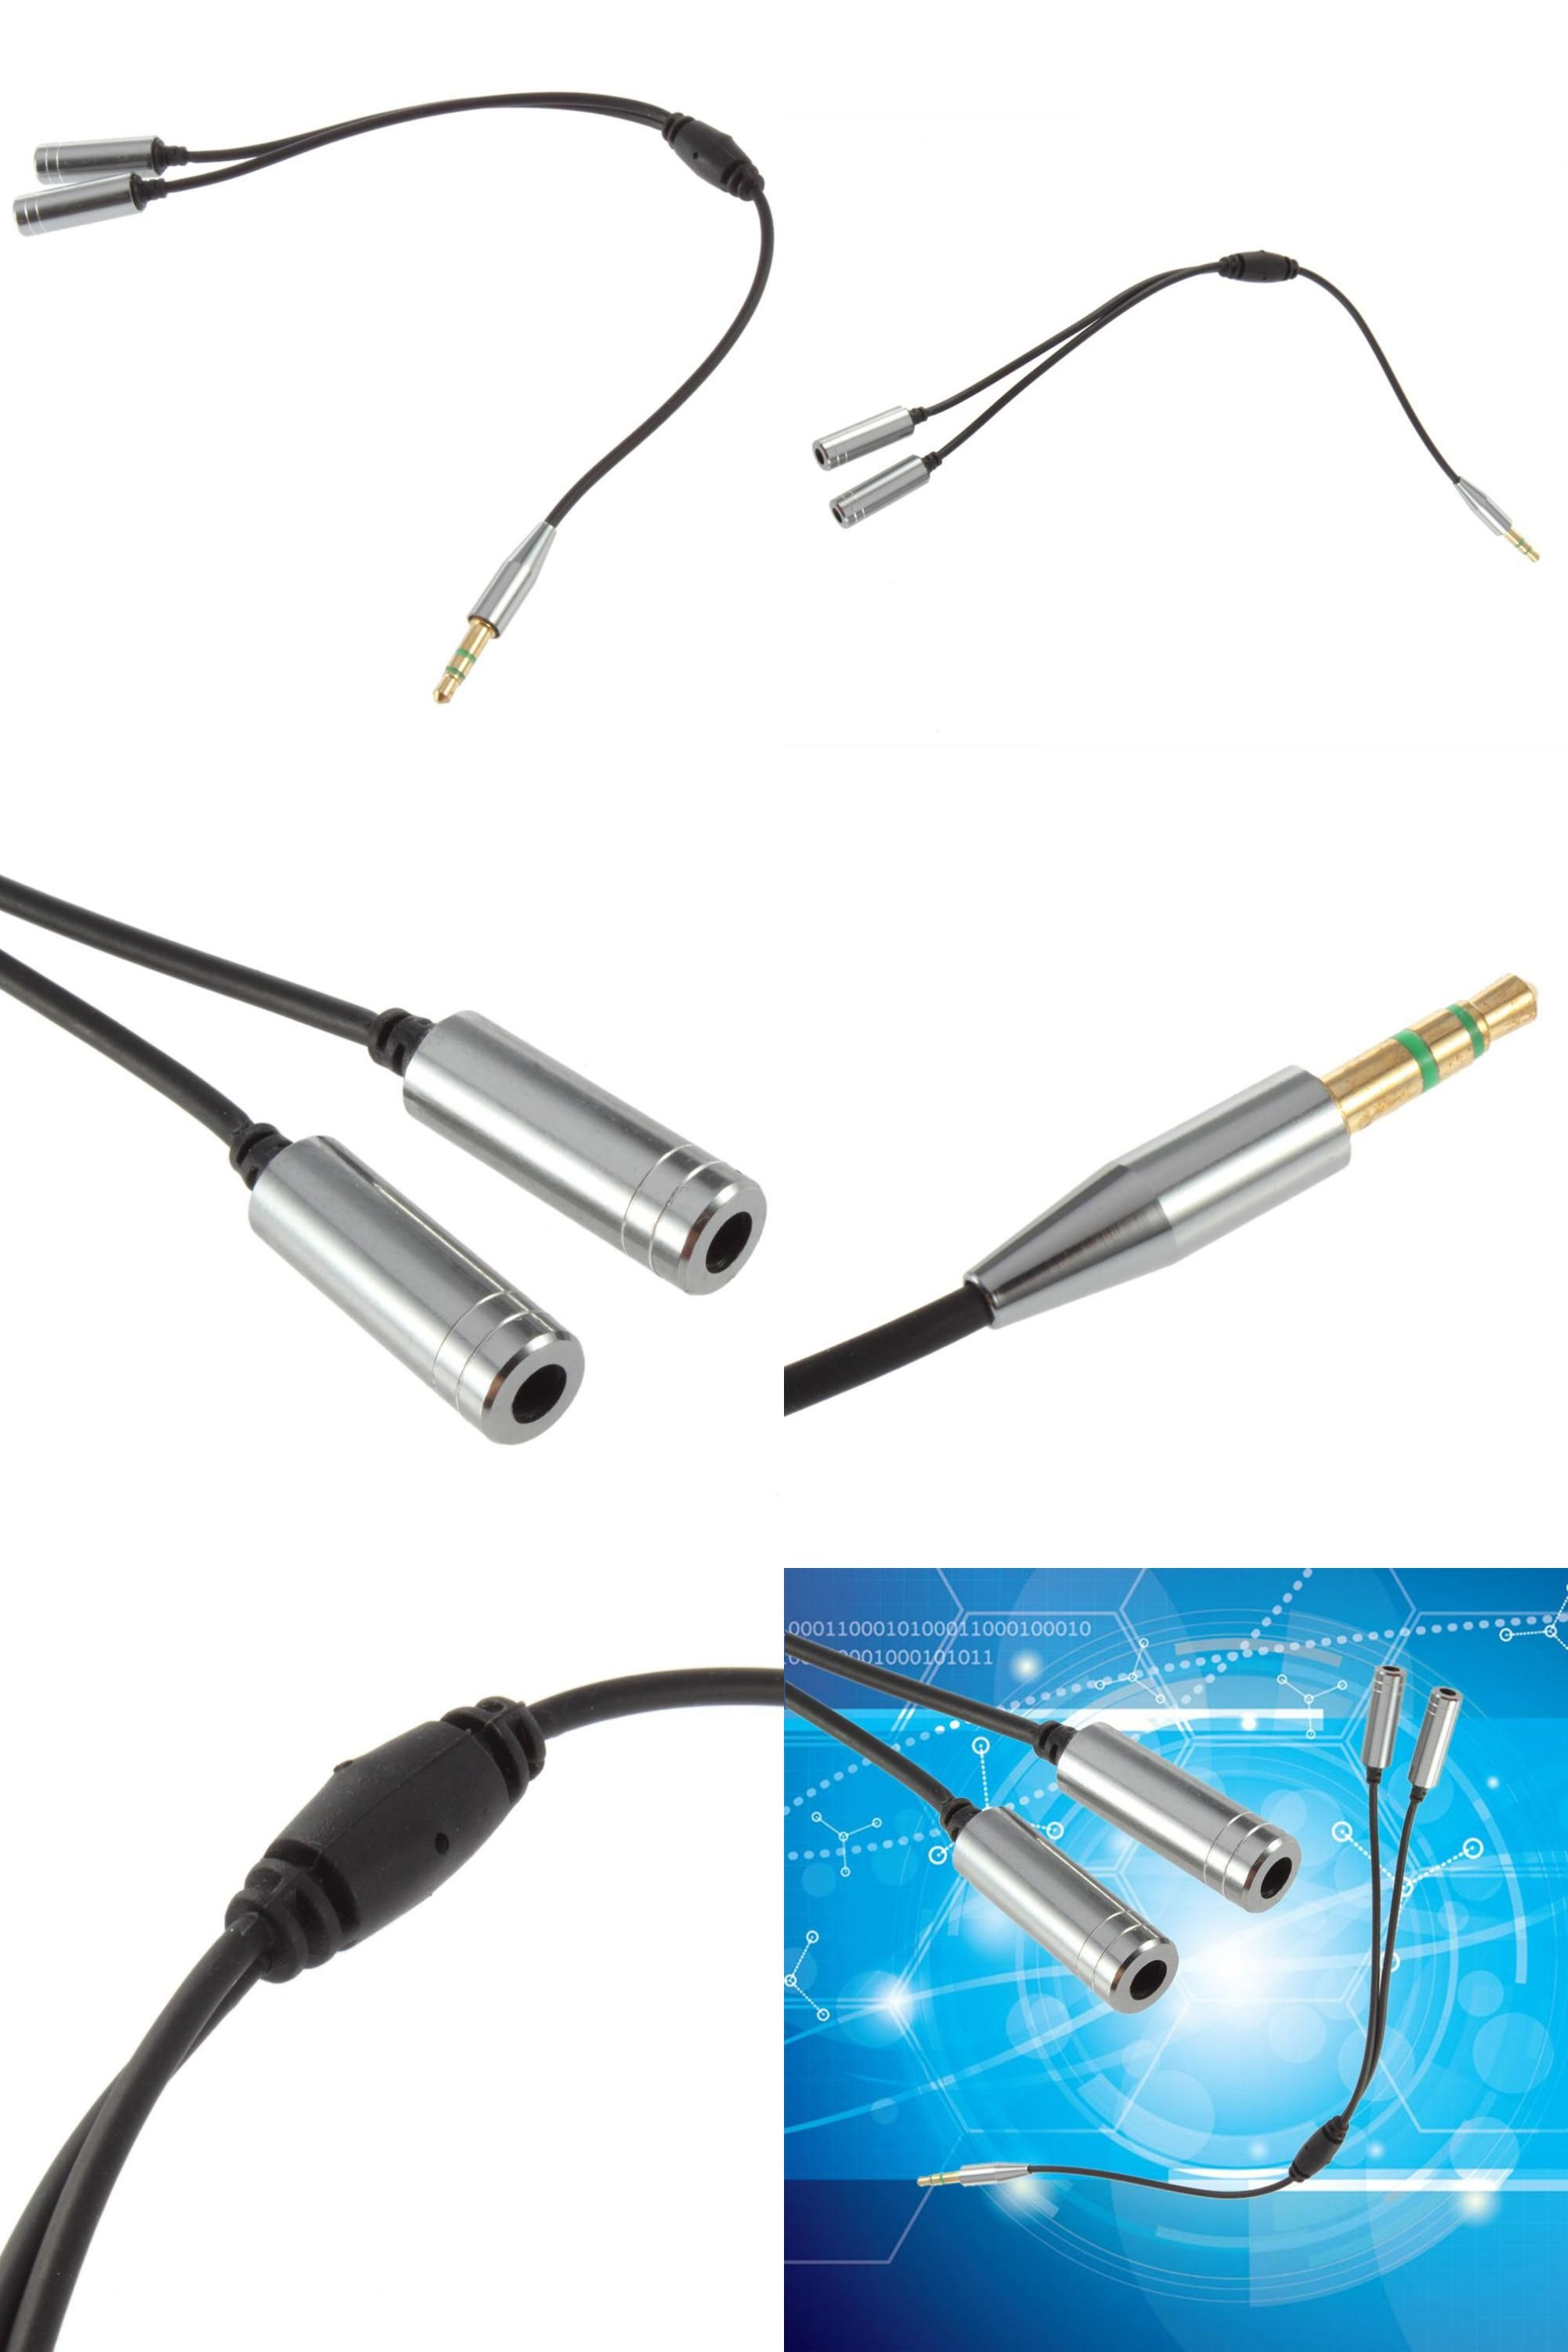 Visit To Buy Audio Cable Jack 3 5mm Male To 2 Female Earphone Extension Cable 3 5mm Headphone Splitter Adapter For I Headphone Splitter Audio Cable Headphone